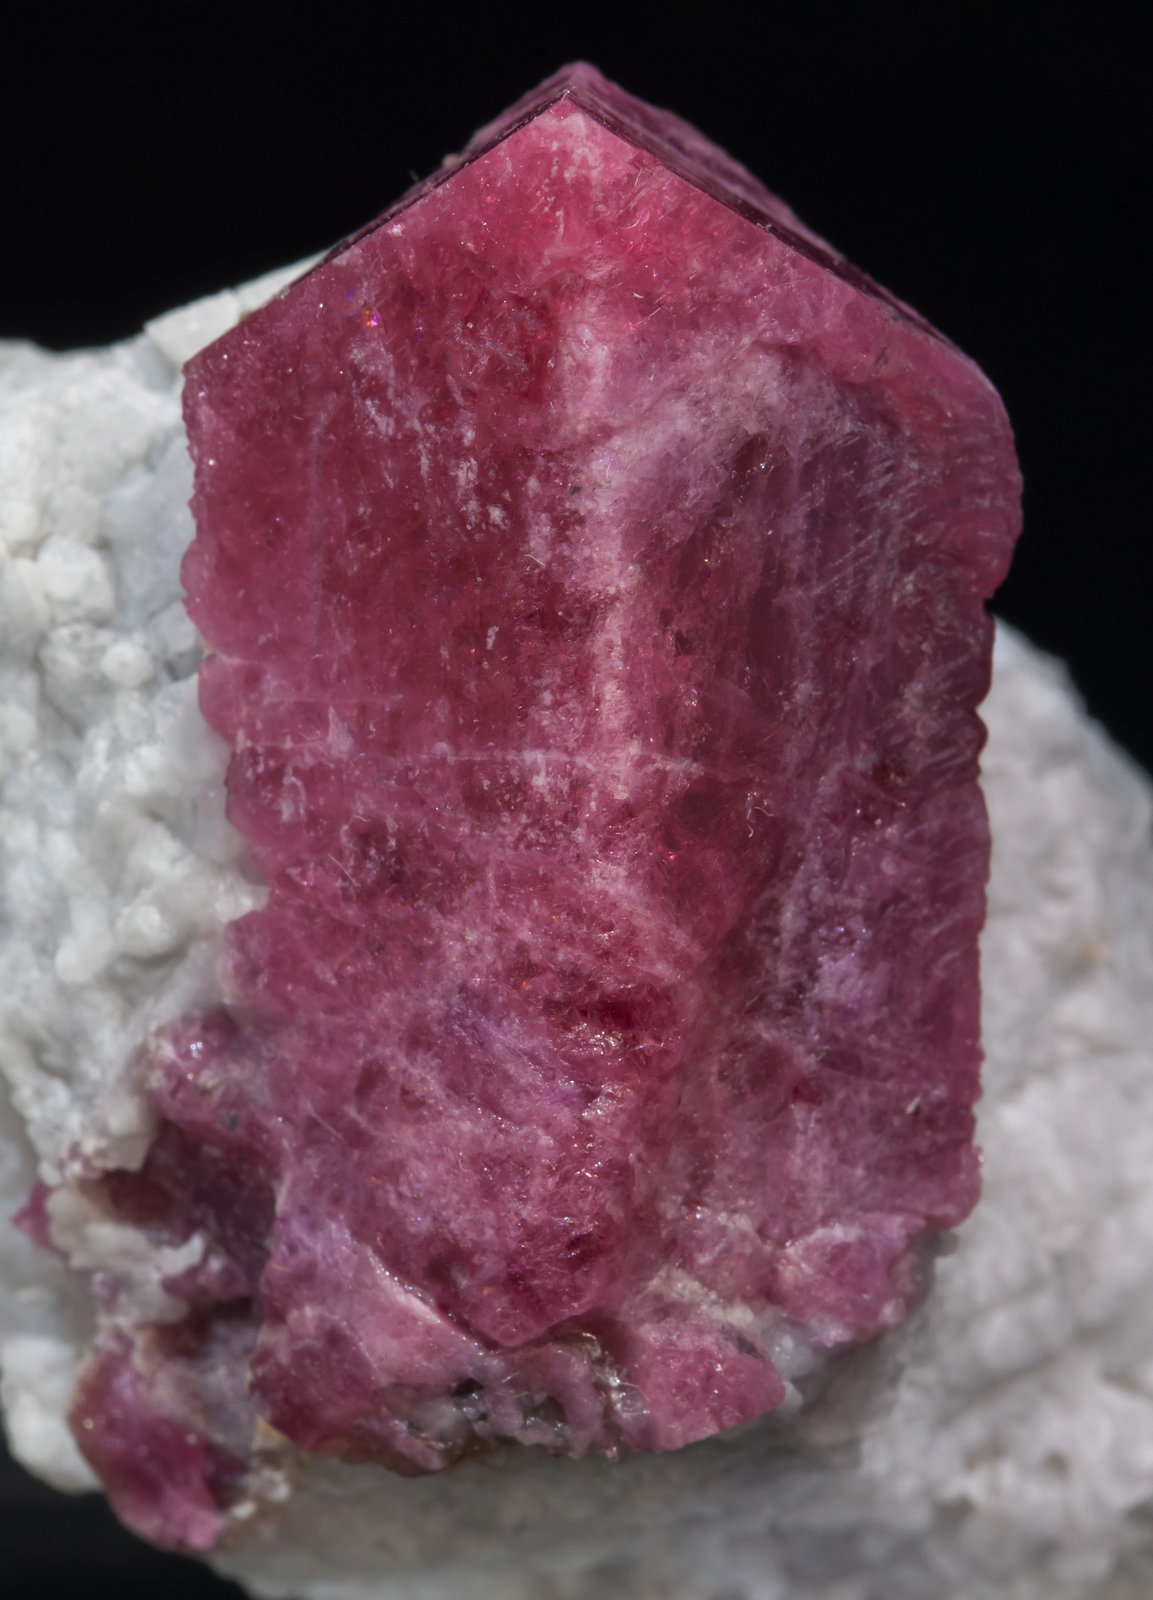 specimens/s_imagesAF2/Spinel-DX70AF2d.jpg